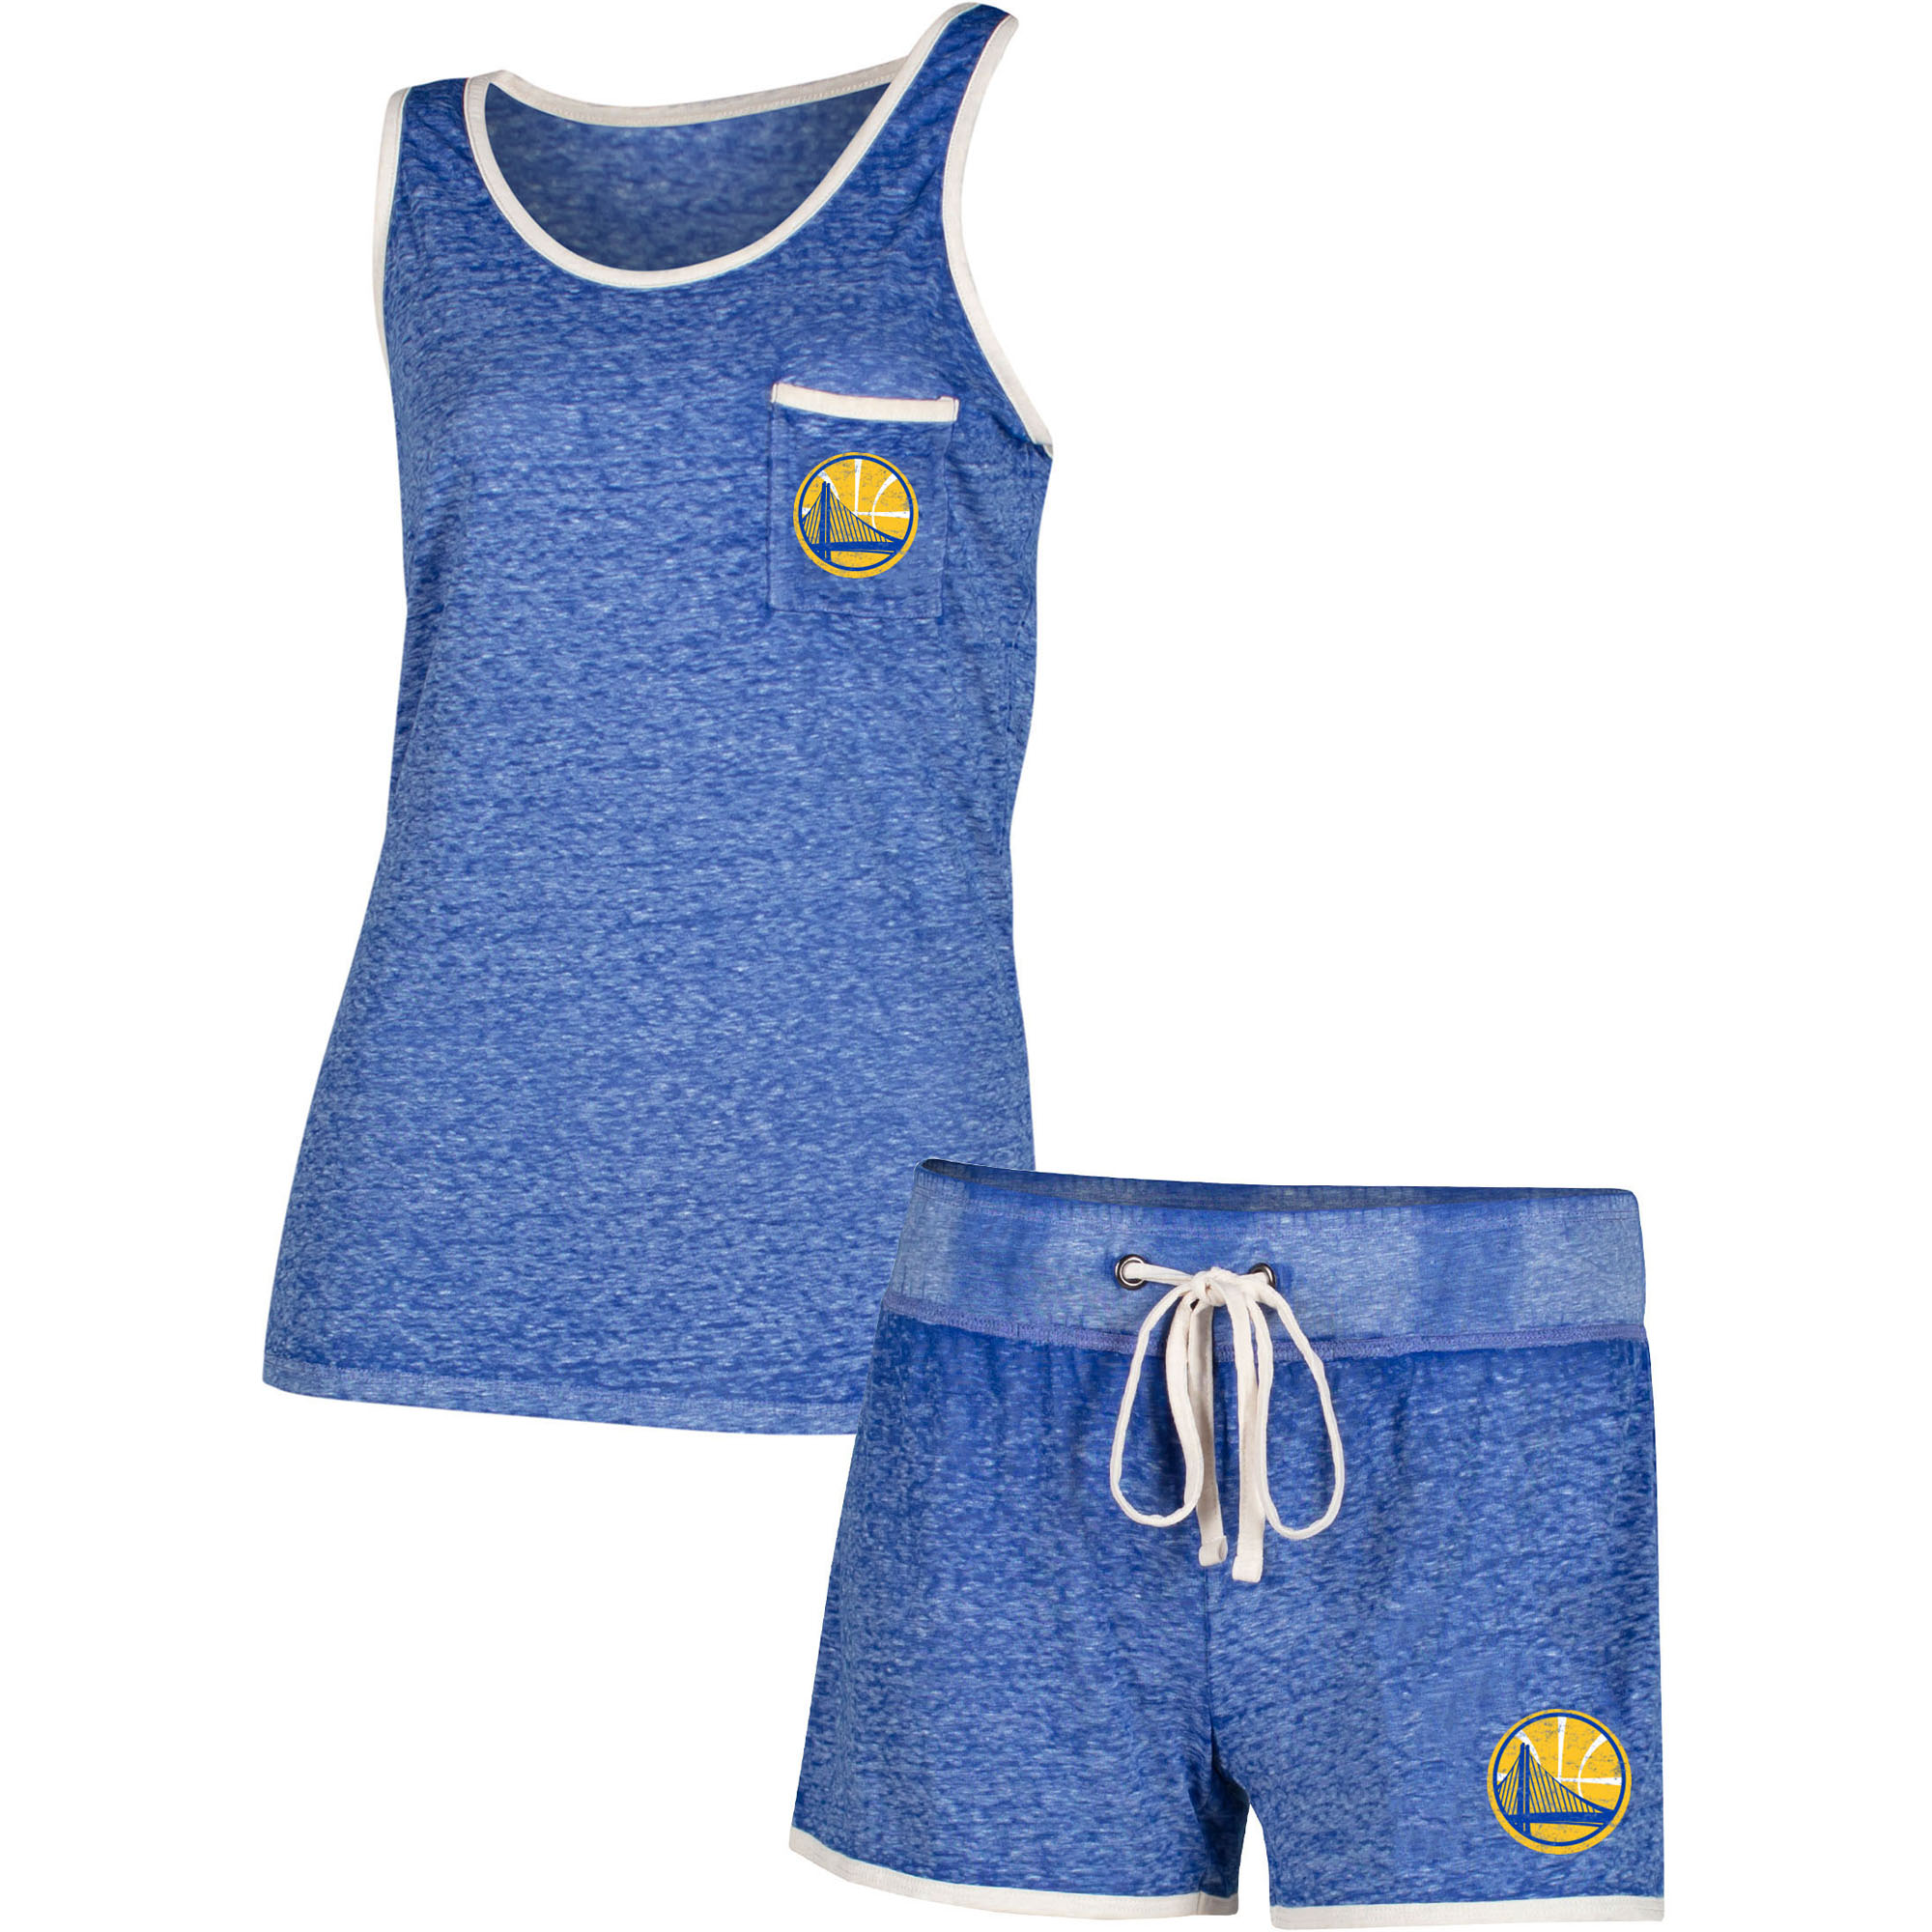 Golden State Warriors Concepts Sport Women's Squad Tank Top and Shorts Set - Royal